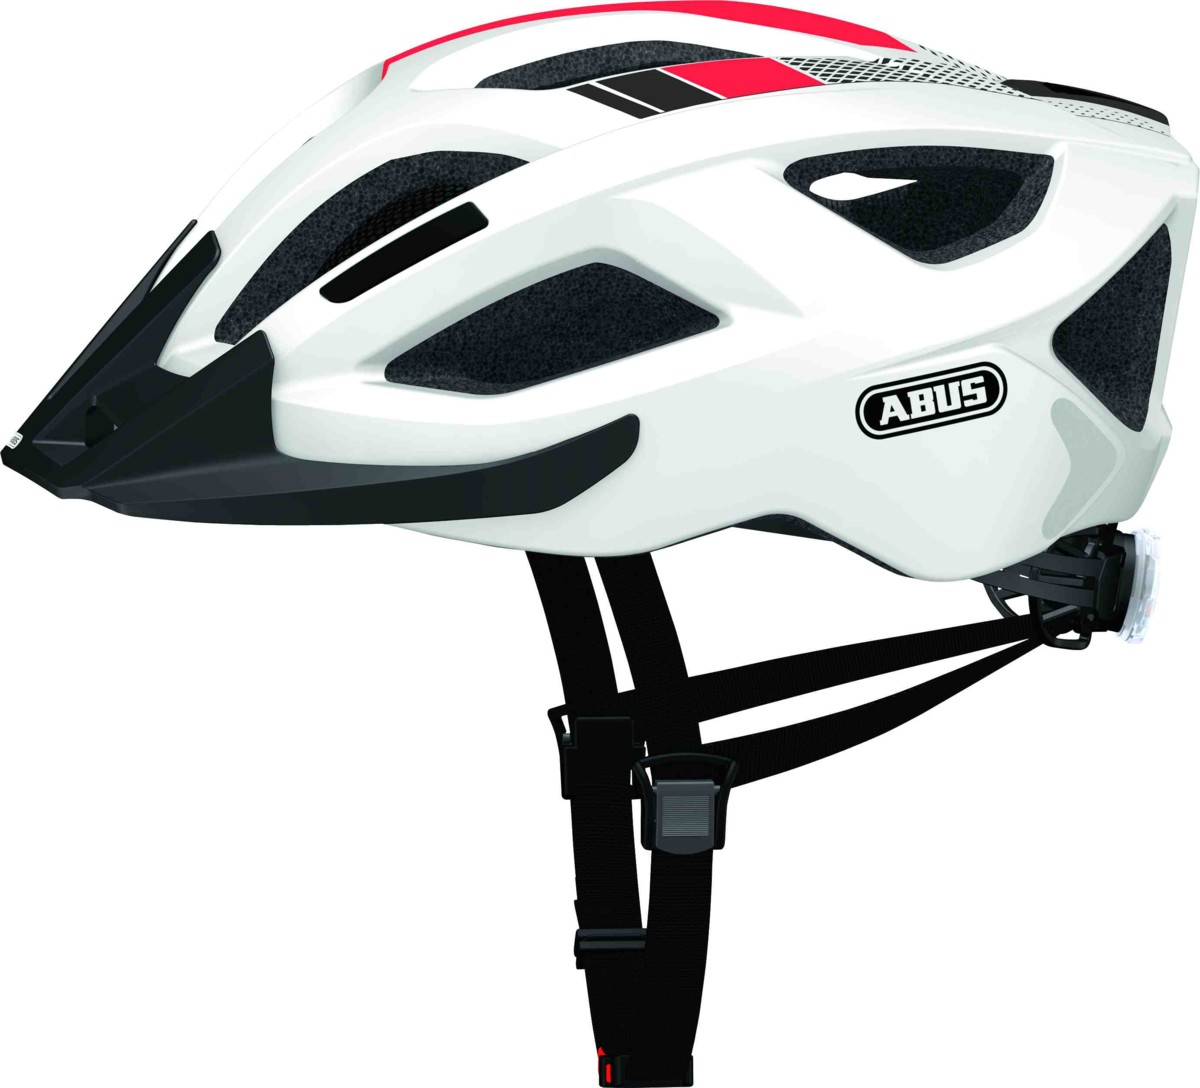 Aduro 2.0 race white - Aduro 2.0 race white M